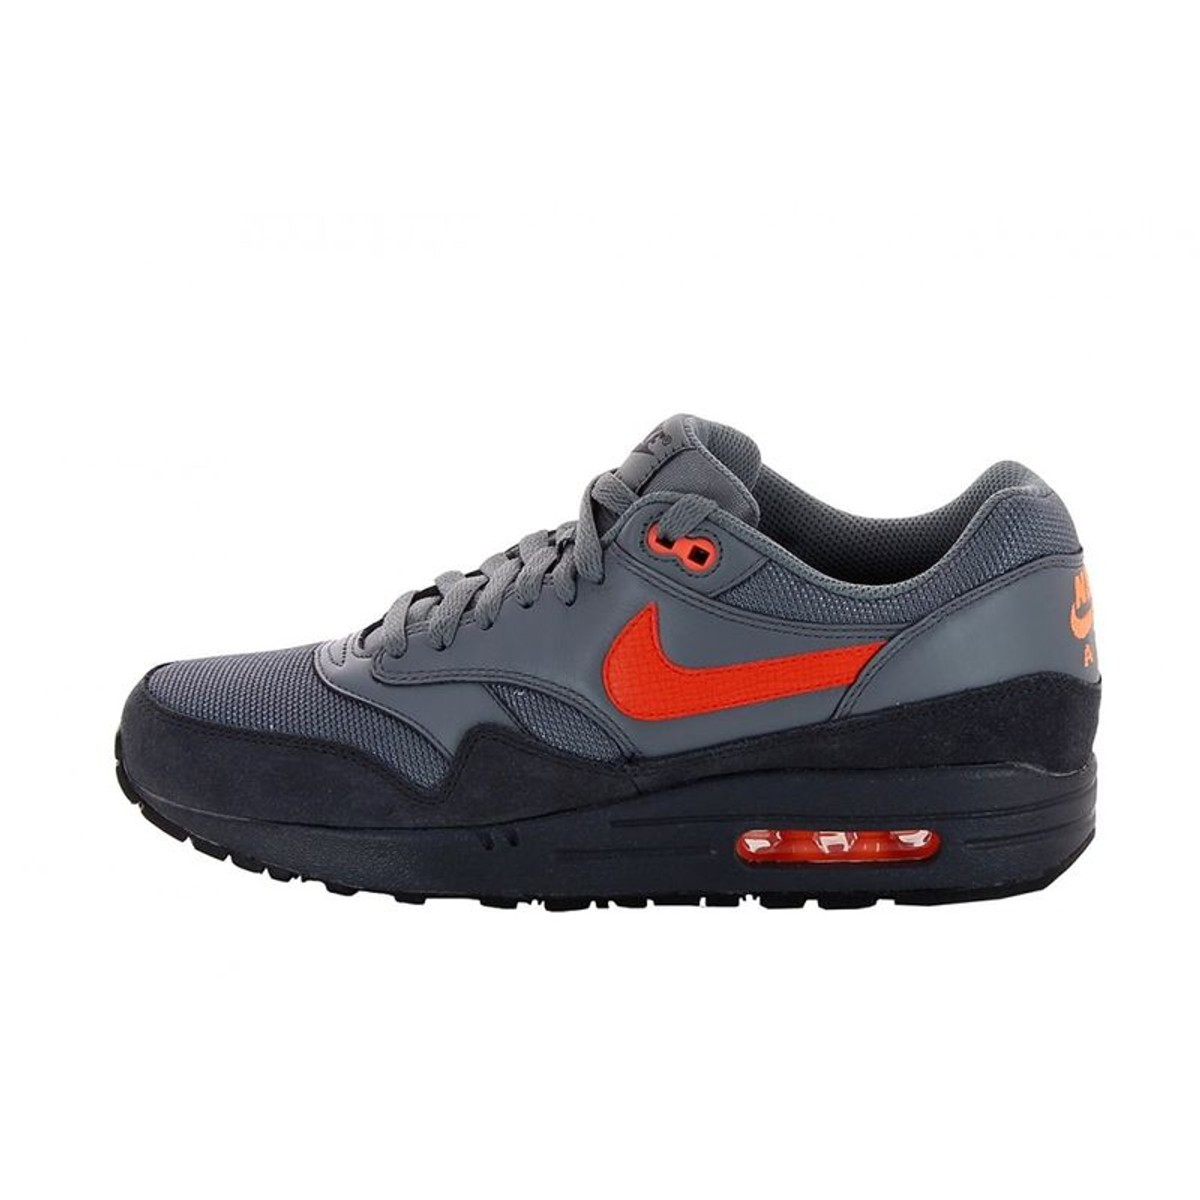 1 Max Basket 12Products 001 Nike 579920 En Air Taille38 zVSGUqMp